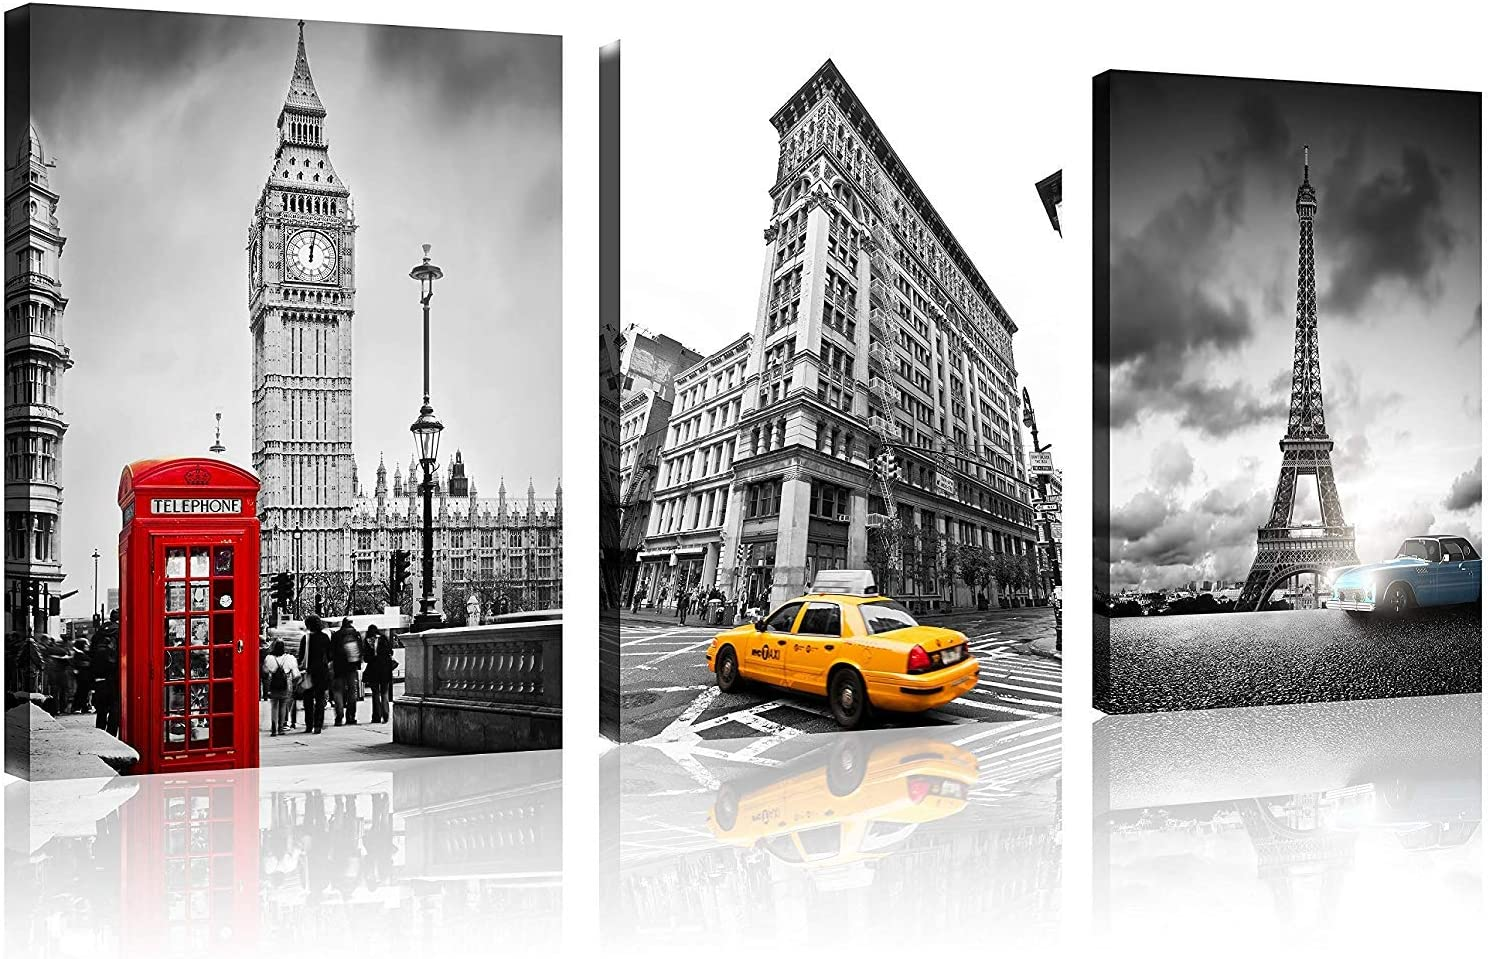 TutuBeer 3 Pcs Black and White with Eiffel Tower Blue Car Paris Canvas Big Ben Red Telephone Booth in London Wall Art Decor New York Yellow Cab 3 Panel Colorful Cityscape Canvas Framed Ready to Hang